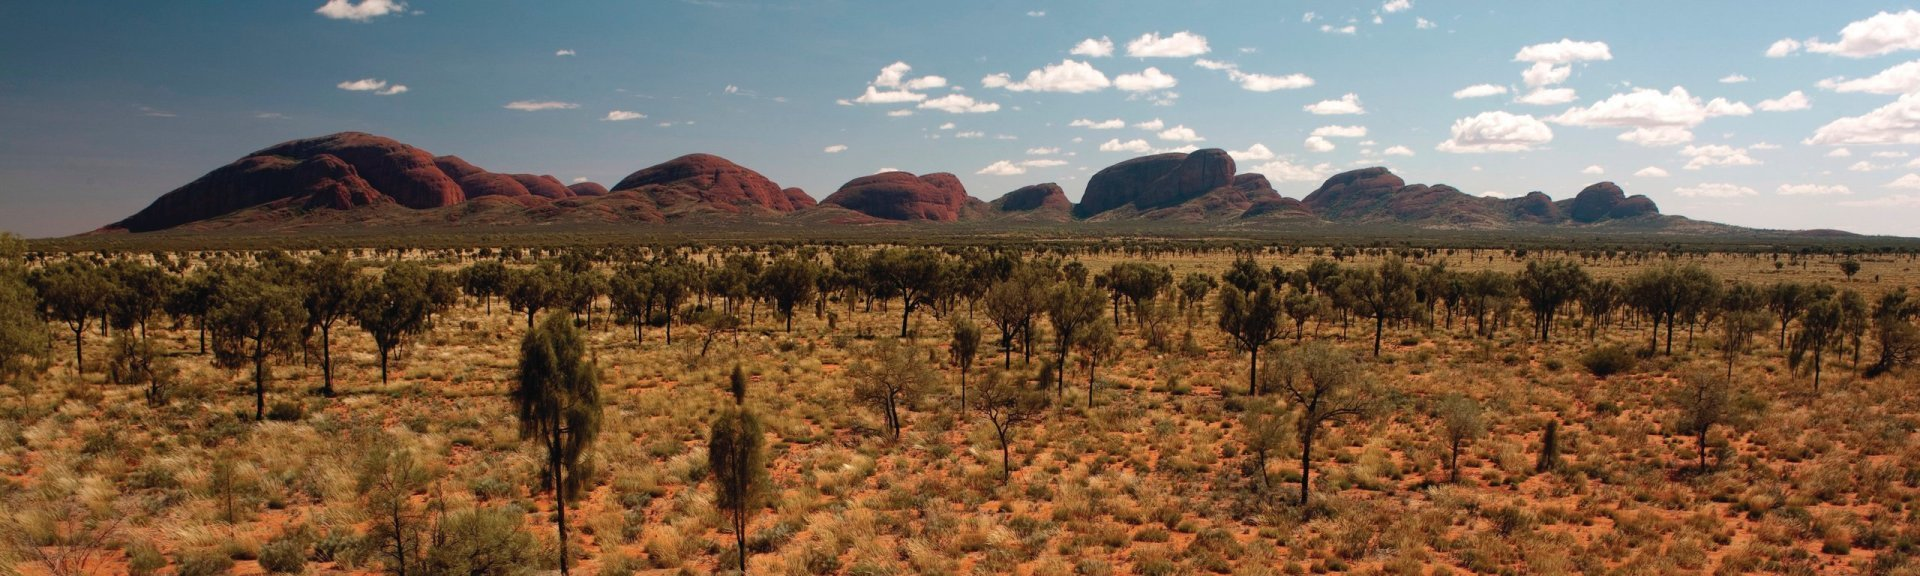 Kata Tjuta. Photo: Tourism Australia